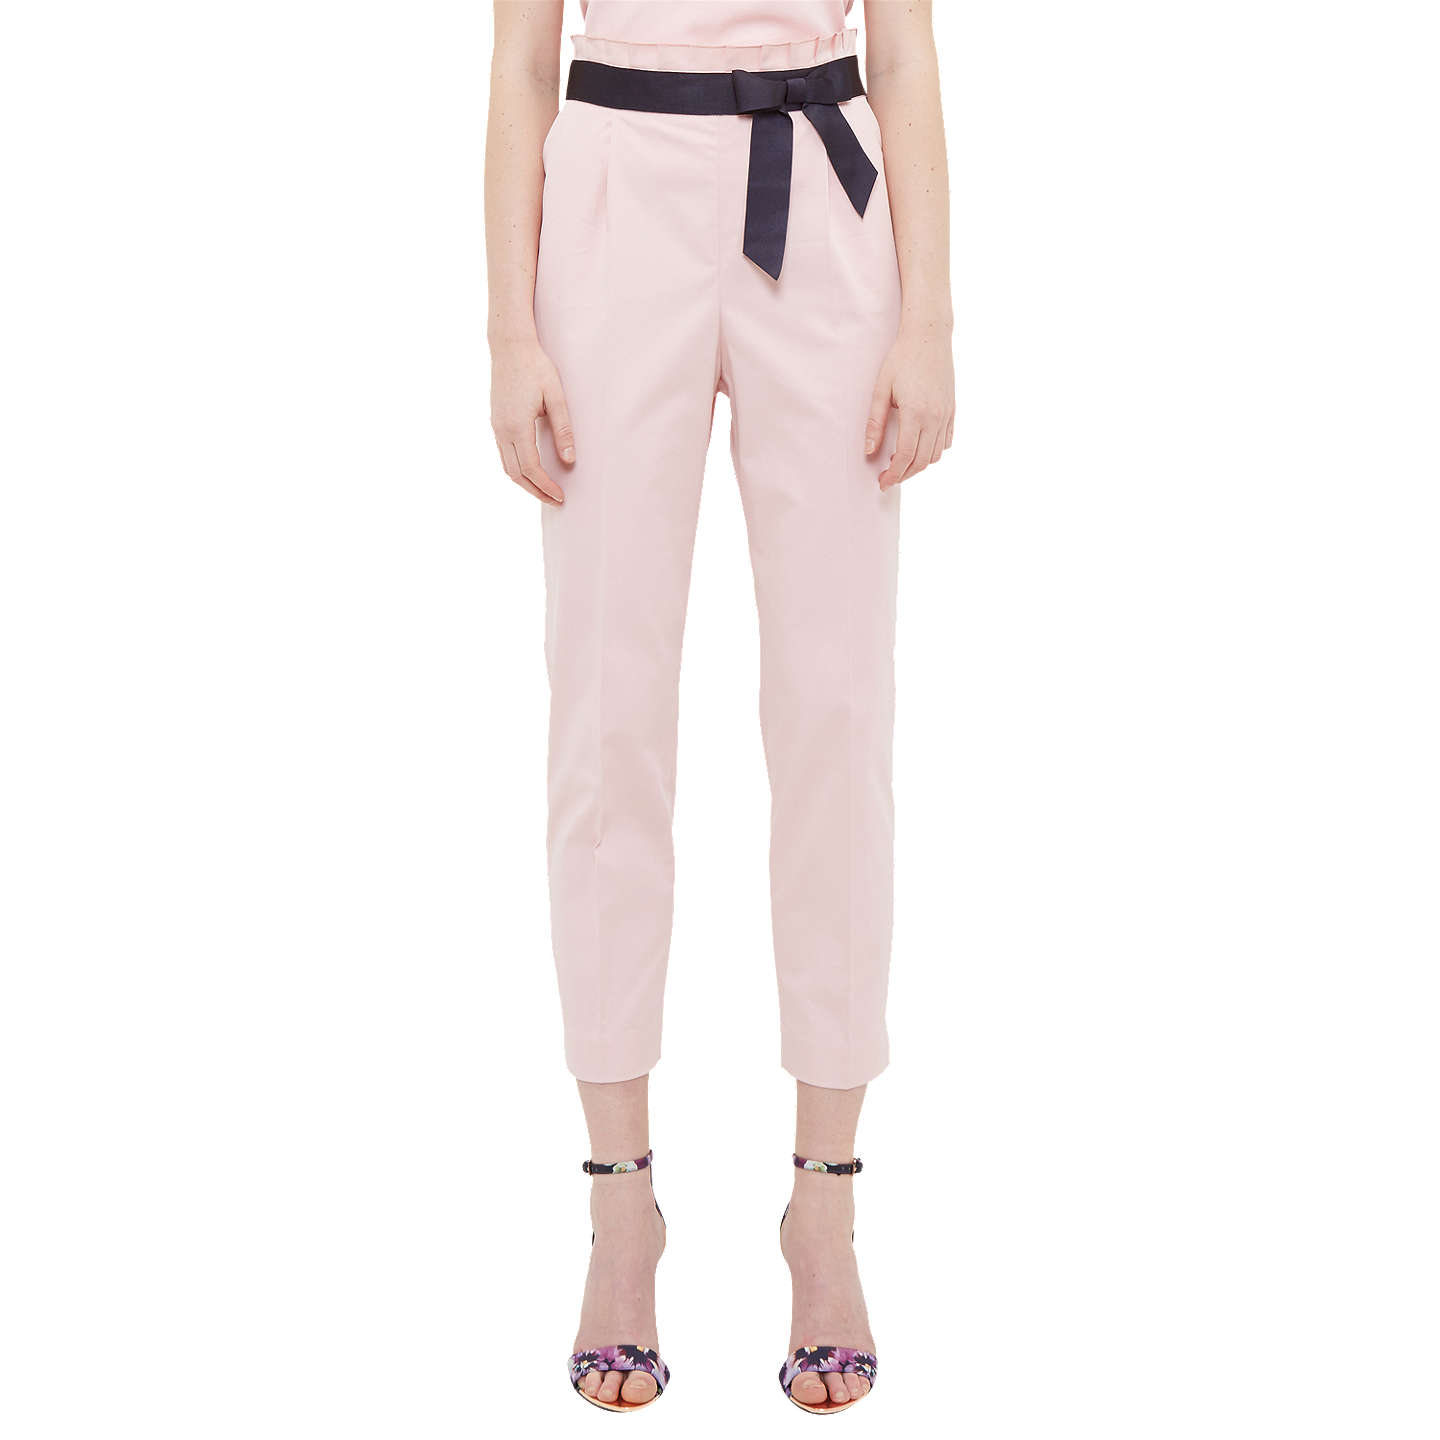 BuyTed Baker Verbo Ruffle Waistline Cotton Blend Trousers, Dusky Pink, 2 Online at johnlewis.com